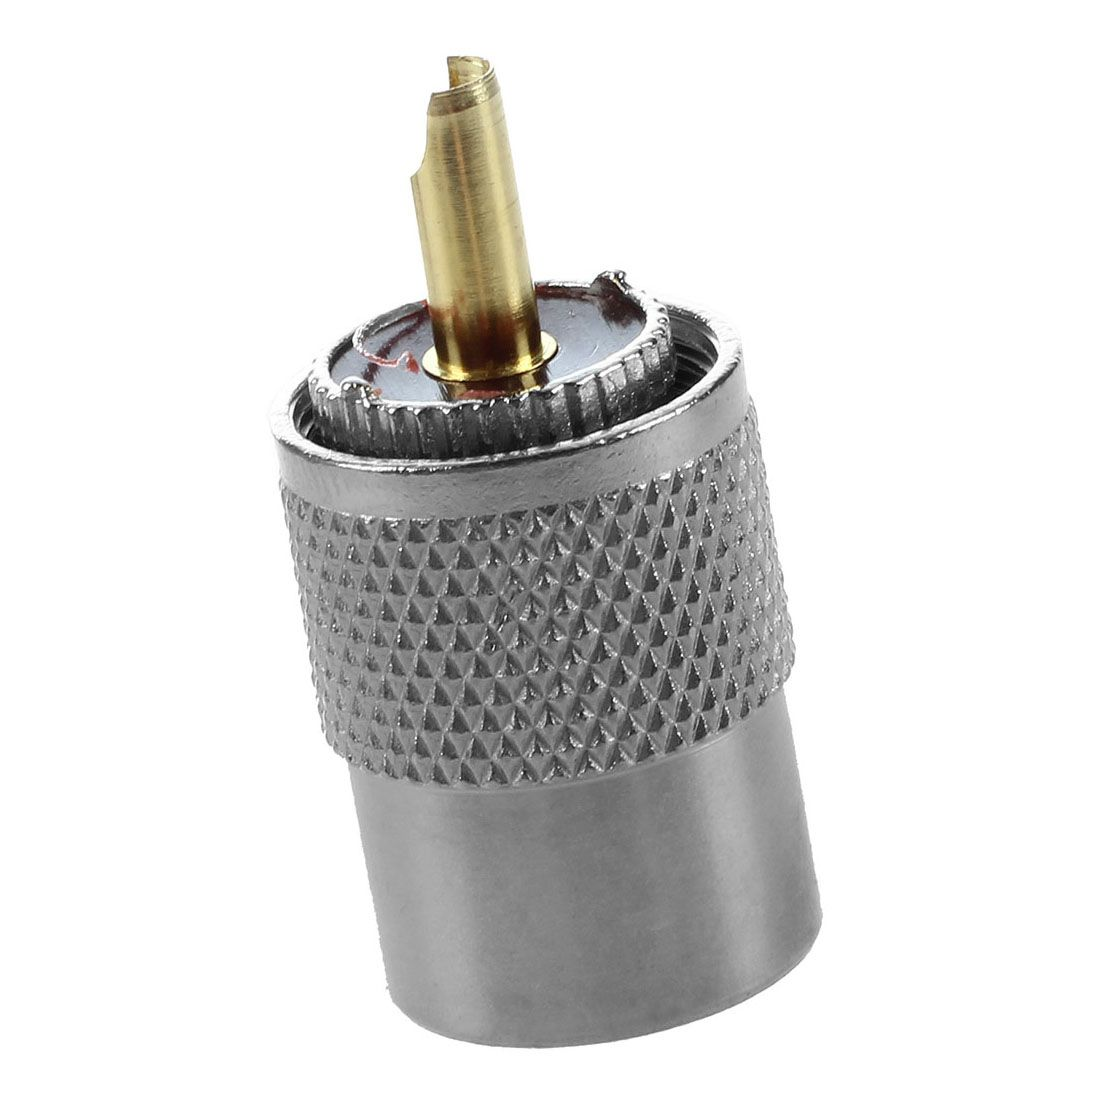 JFBL Hot NEW 10 pcs PL259 solder connector plug WITH reducer for RG8X coaxial coax cable areyourshop hot sale 50 pcs musical audio speaker cable wire 4mm gold plated banana plug connector